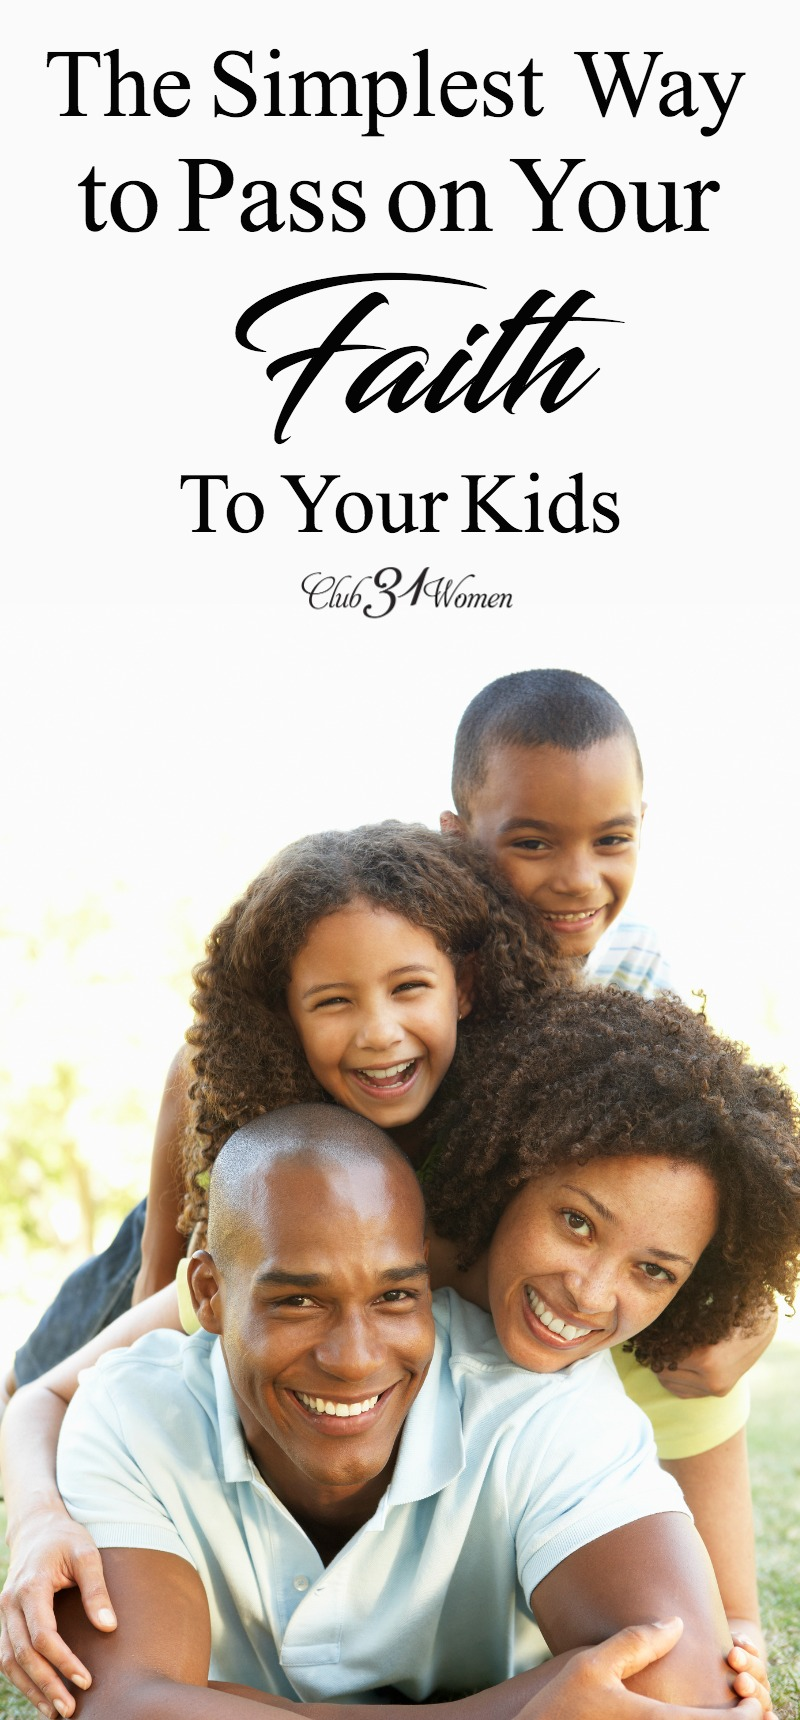 As our children grow and mature, we need to help their faith grow and mature with them. But how can we pass our faith down to our children? via @Club31Women